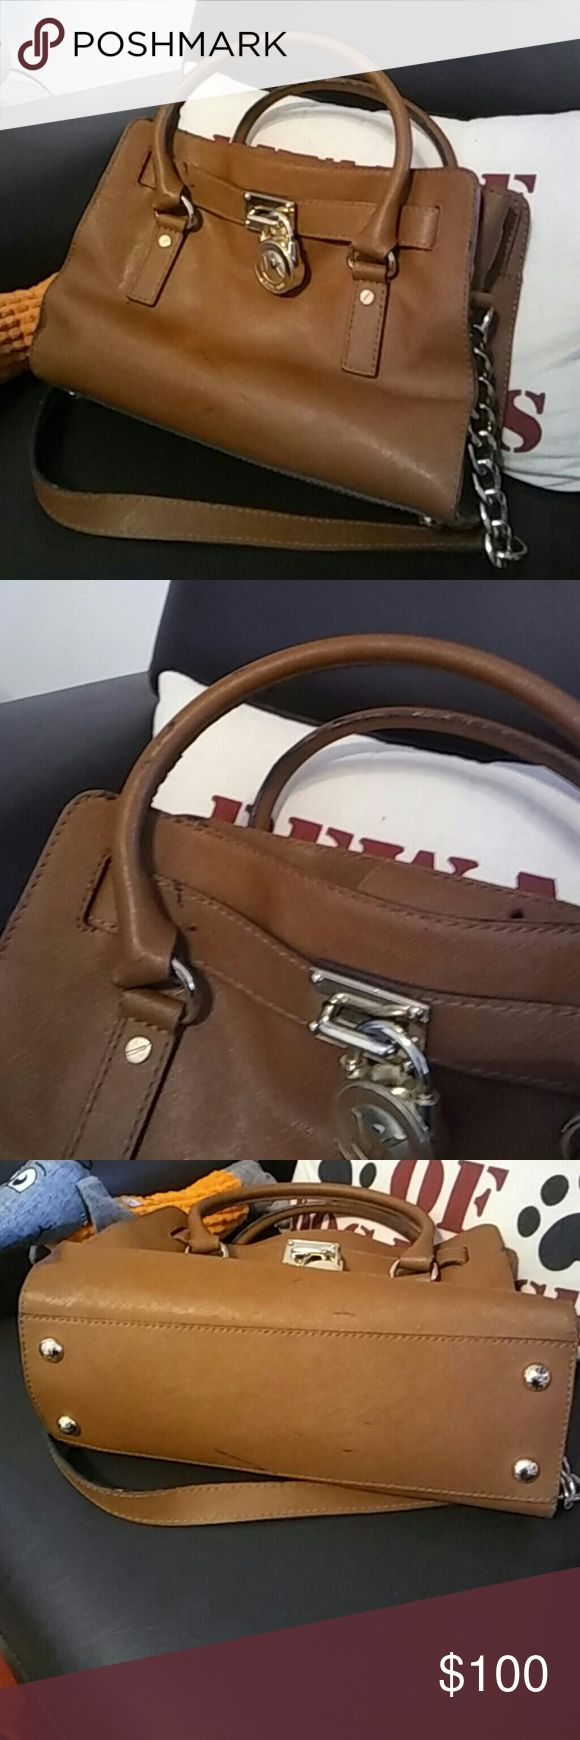 Michael Kors handbag Luggage color beautiful medium size bag. Original. Corners an leather perfect. Tarnish in lock. Just a couple of rubber marks around the bag from been stored. It can be cleaned or removed but I prefer someone else to do that. Inside light make up staining at bottom.  Open to reasonable offers. Michael Kors Bags Crossbody Bags